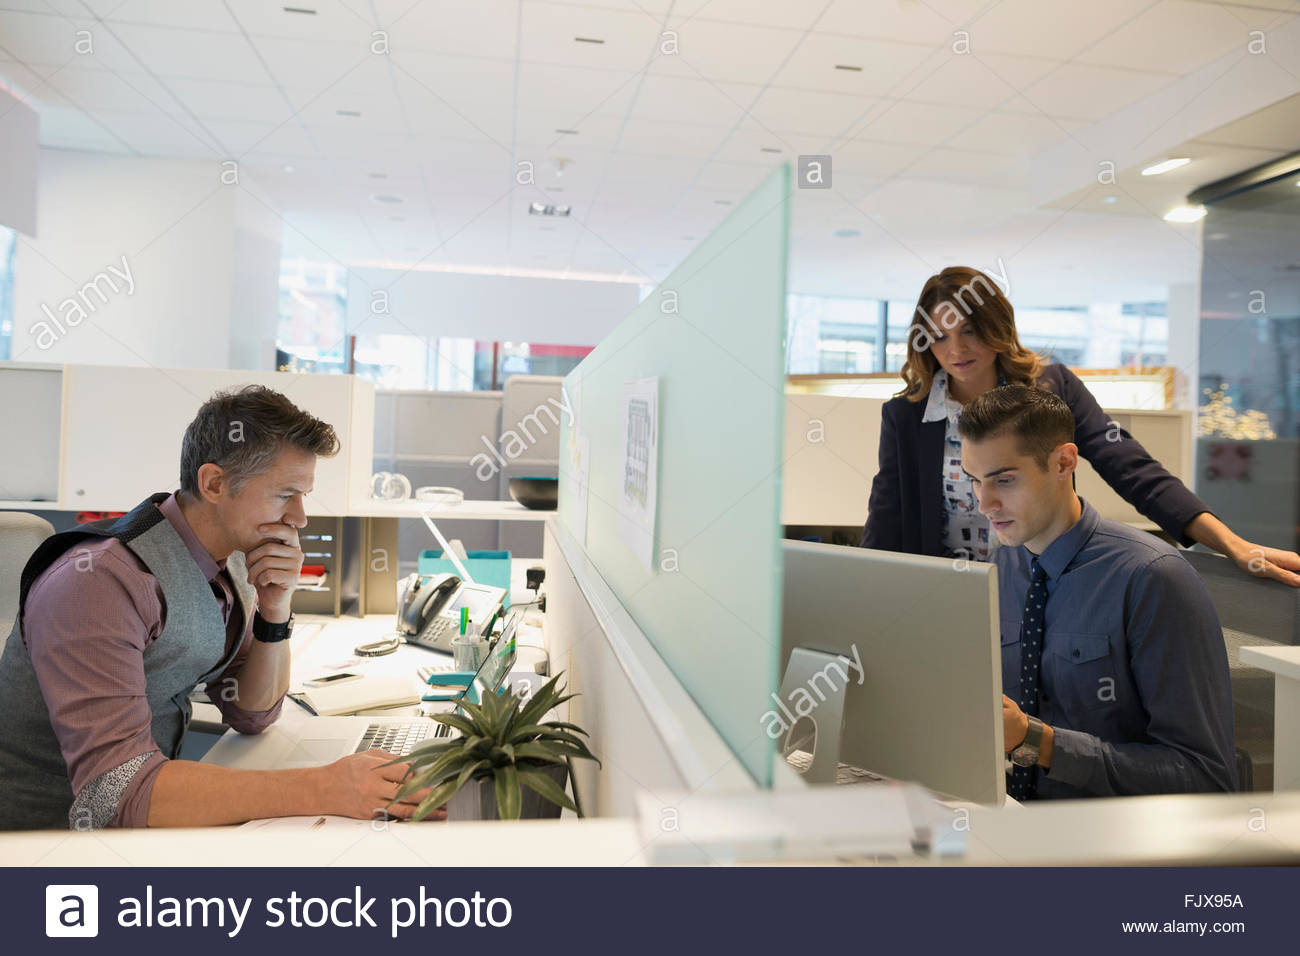 Business people working at cubicles in office - Stock Image